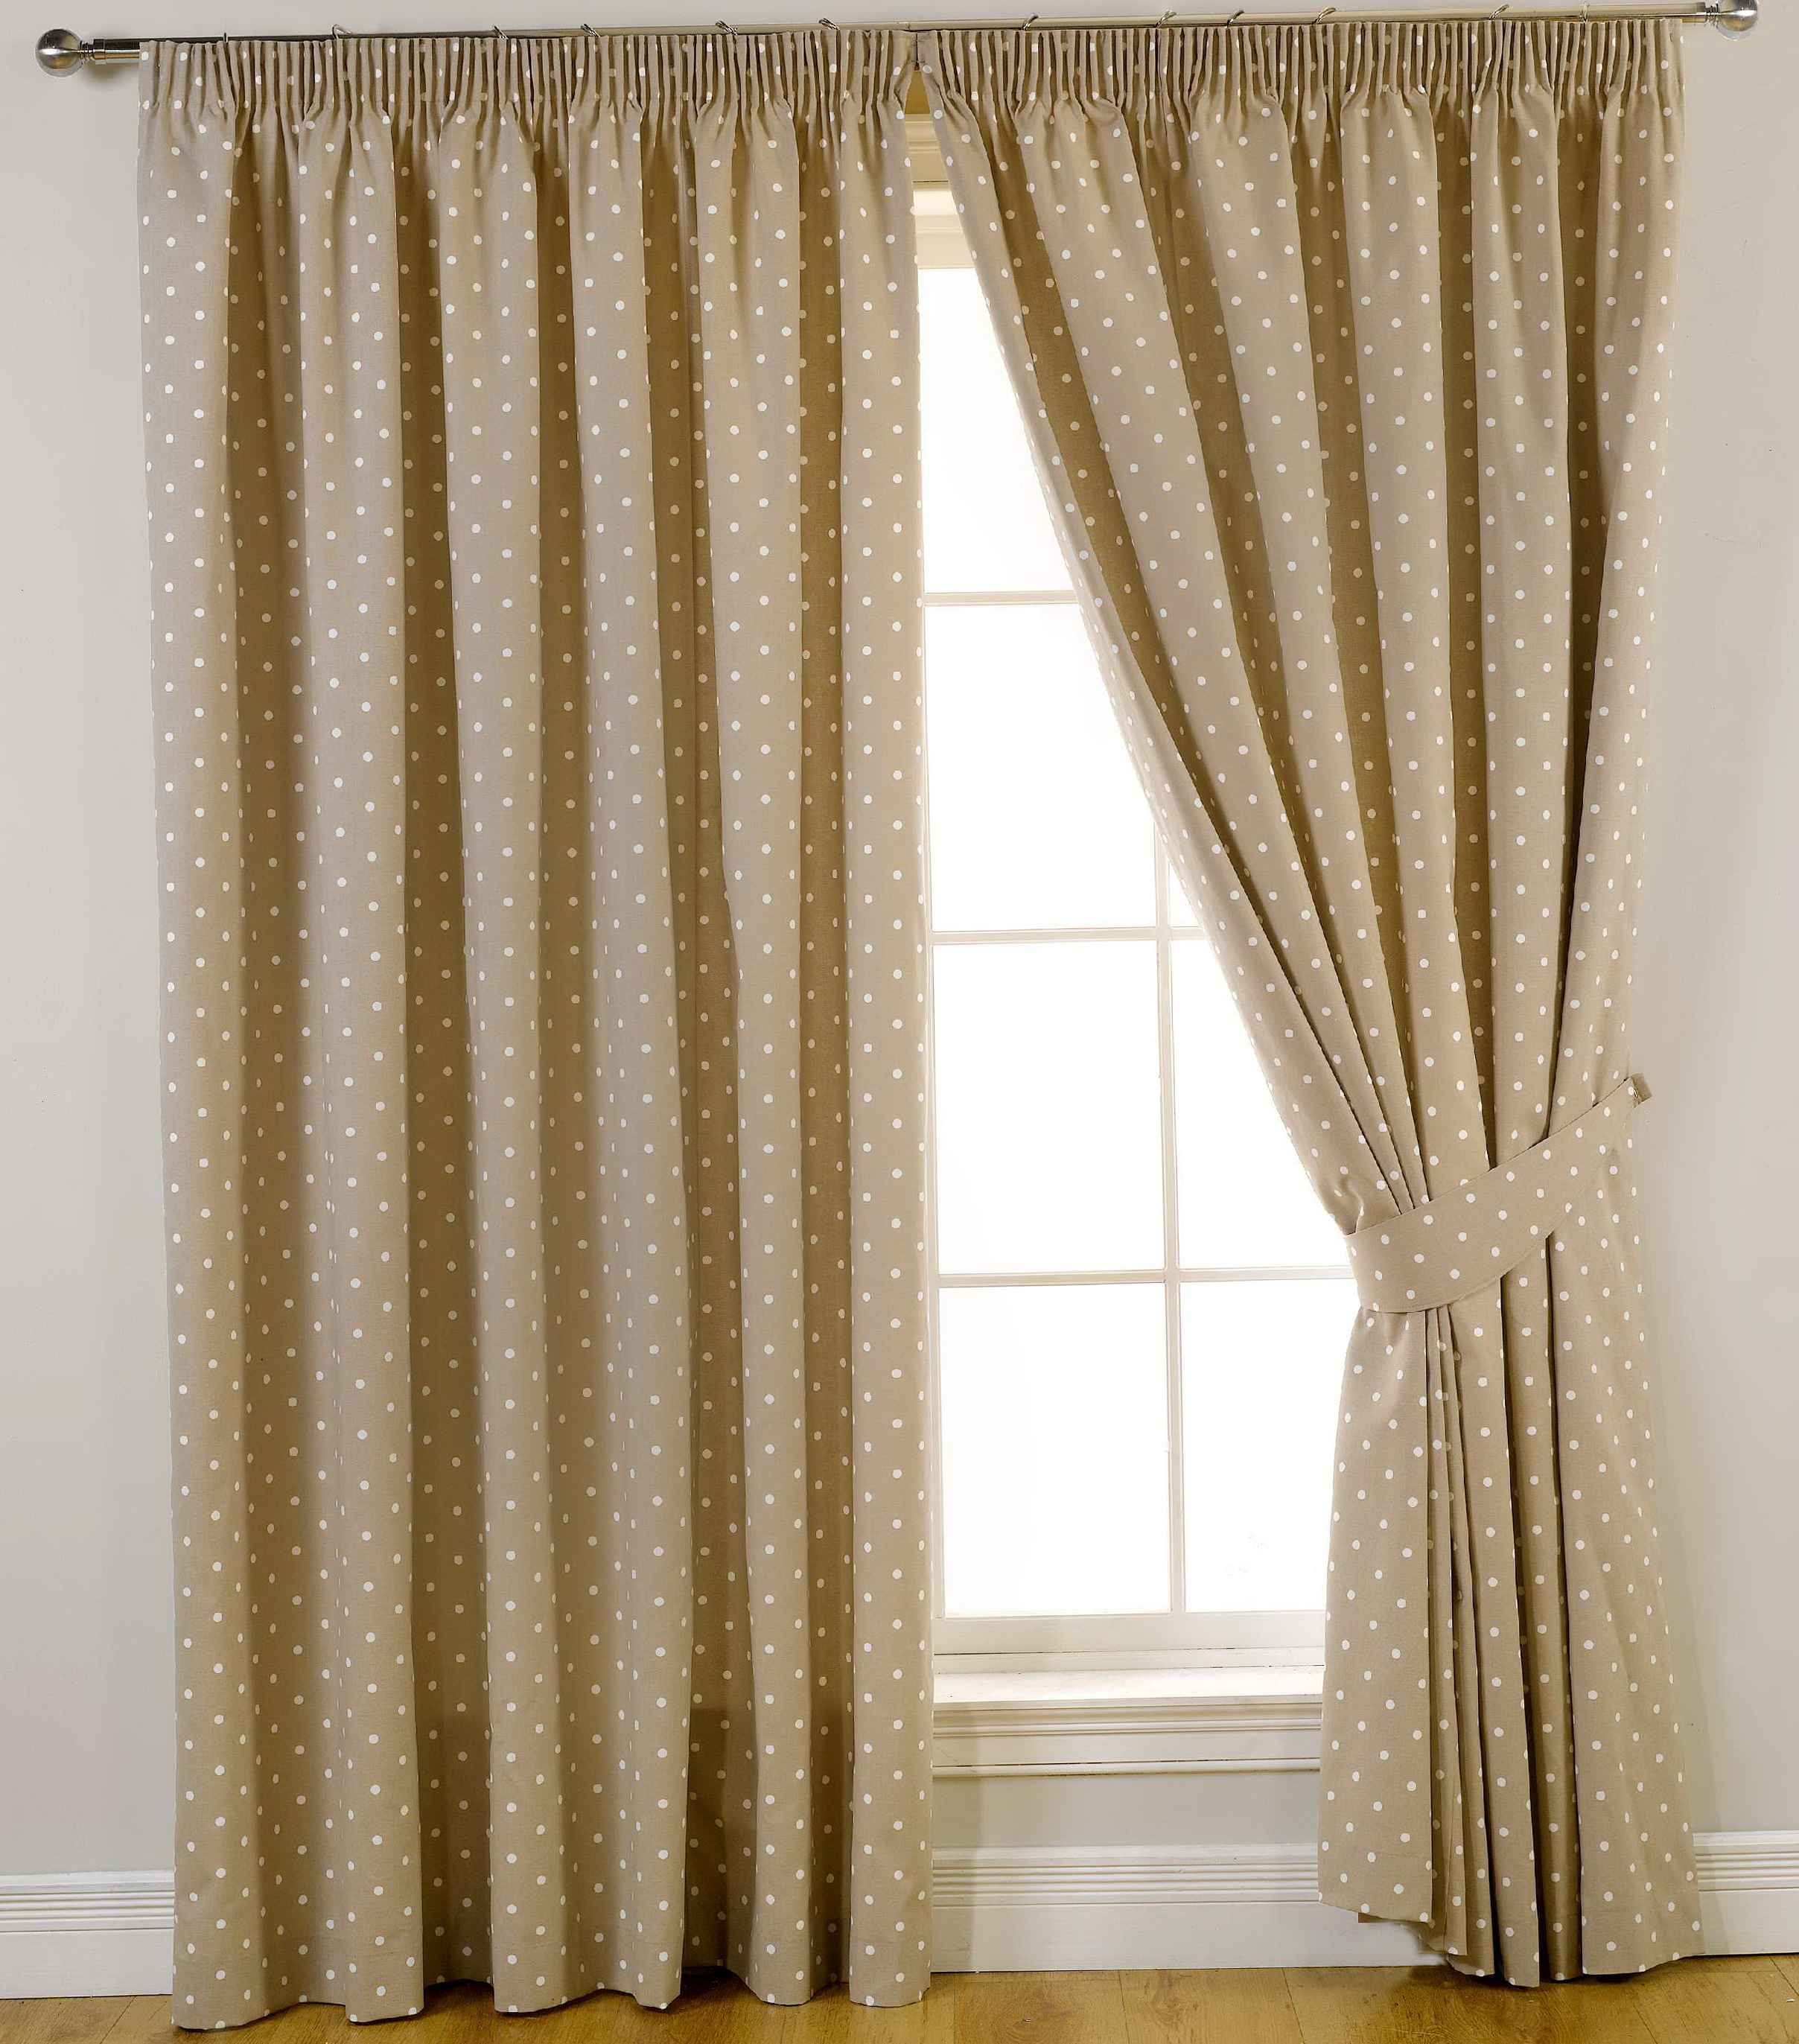 Where to buy curtains in nj home design ideas for Where to buy curtain panels